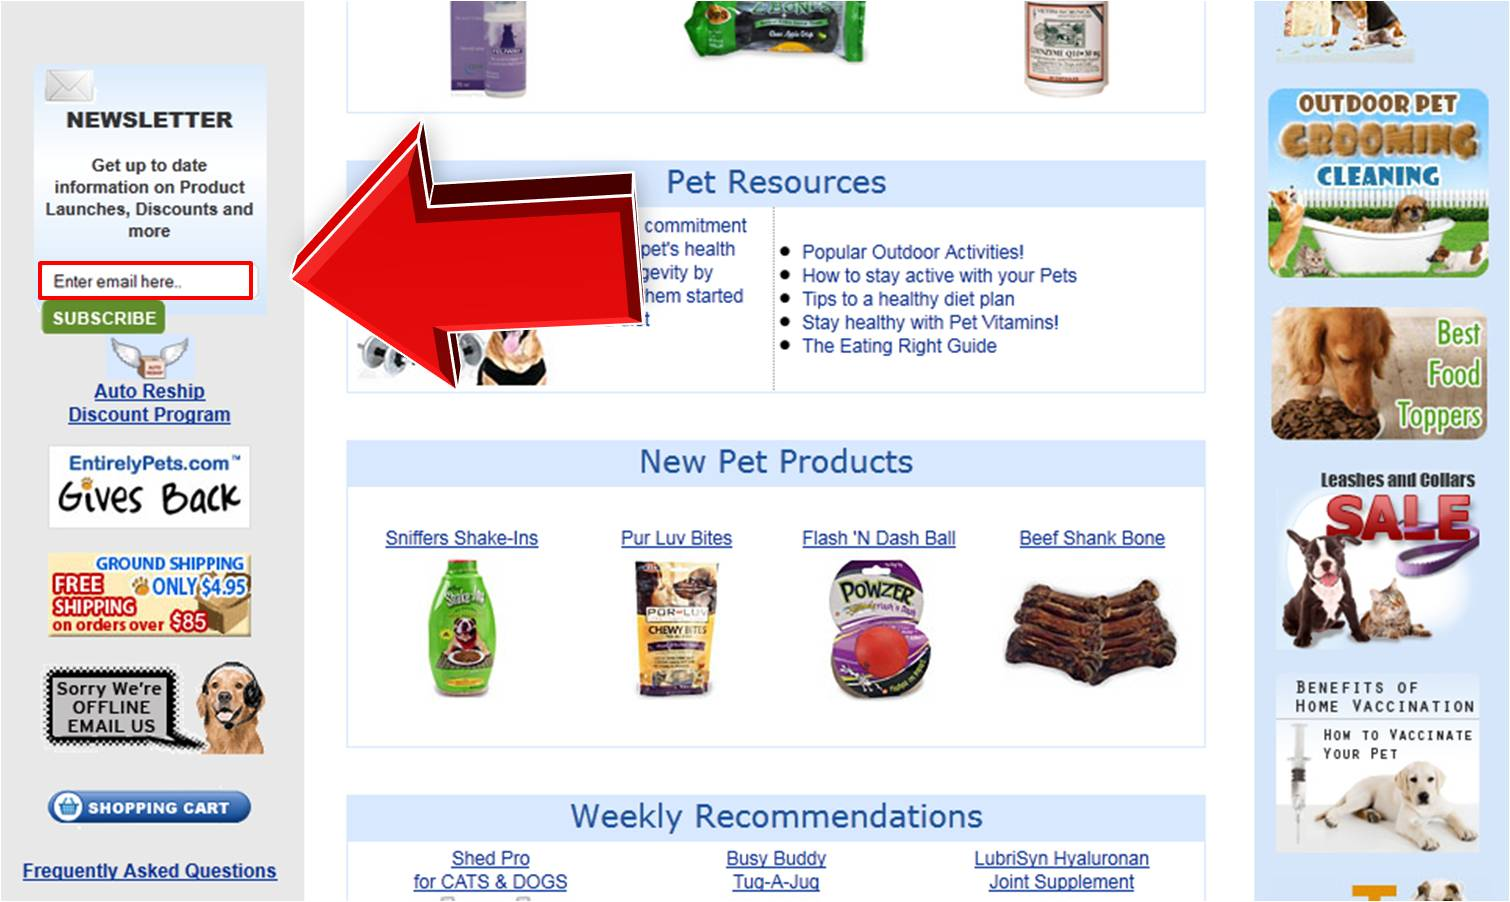 How to use entirelypets Coupons Entirely Pets offers free shipping on orders over $85 and a low flat rate shipping price on all others. Shop their